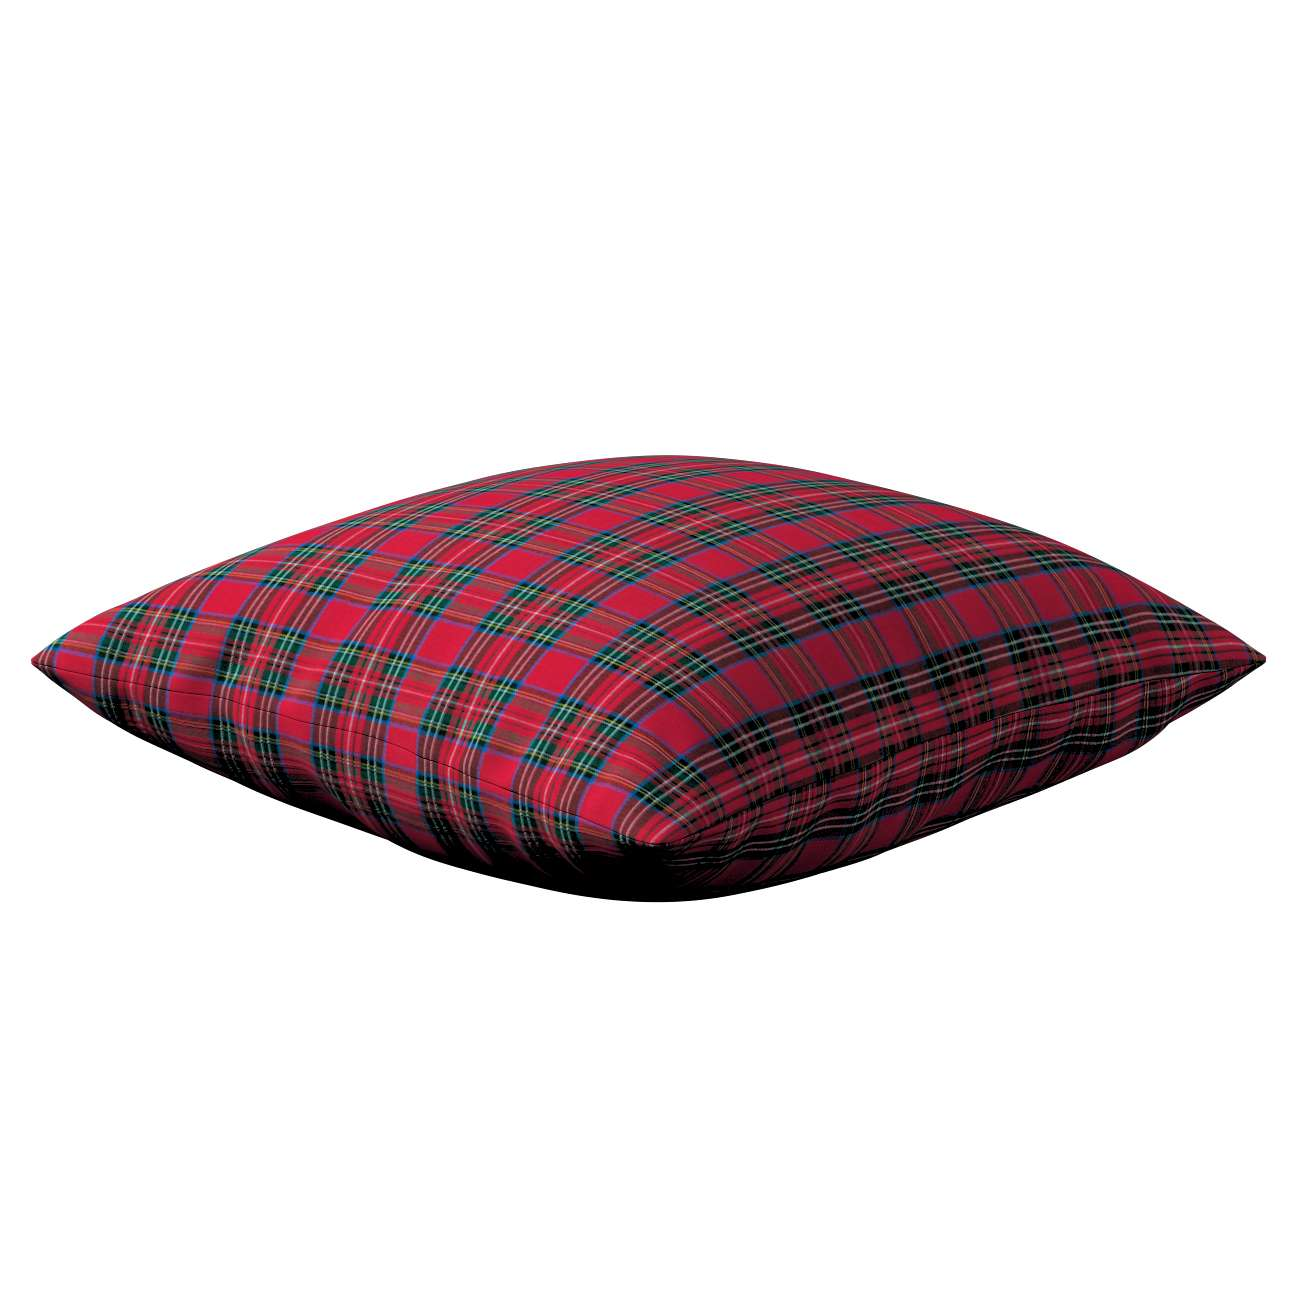 Kinga cushion cover 43 x 43 cm (17 x 17 inch) in collection Bristol, fabric: 126-29